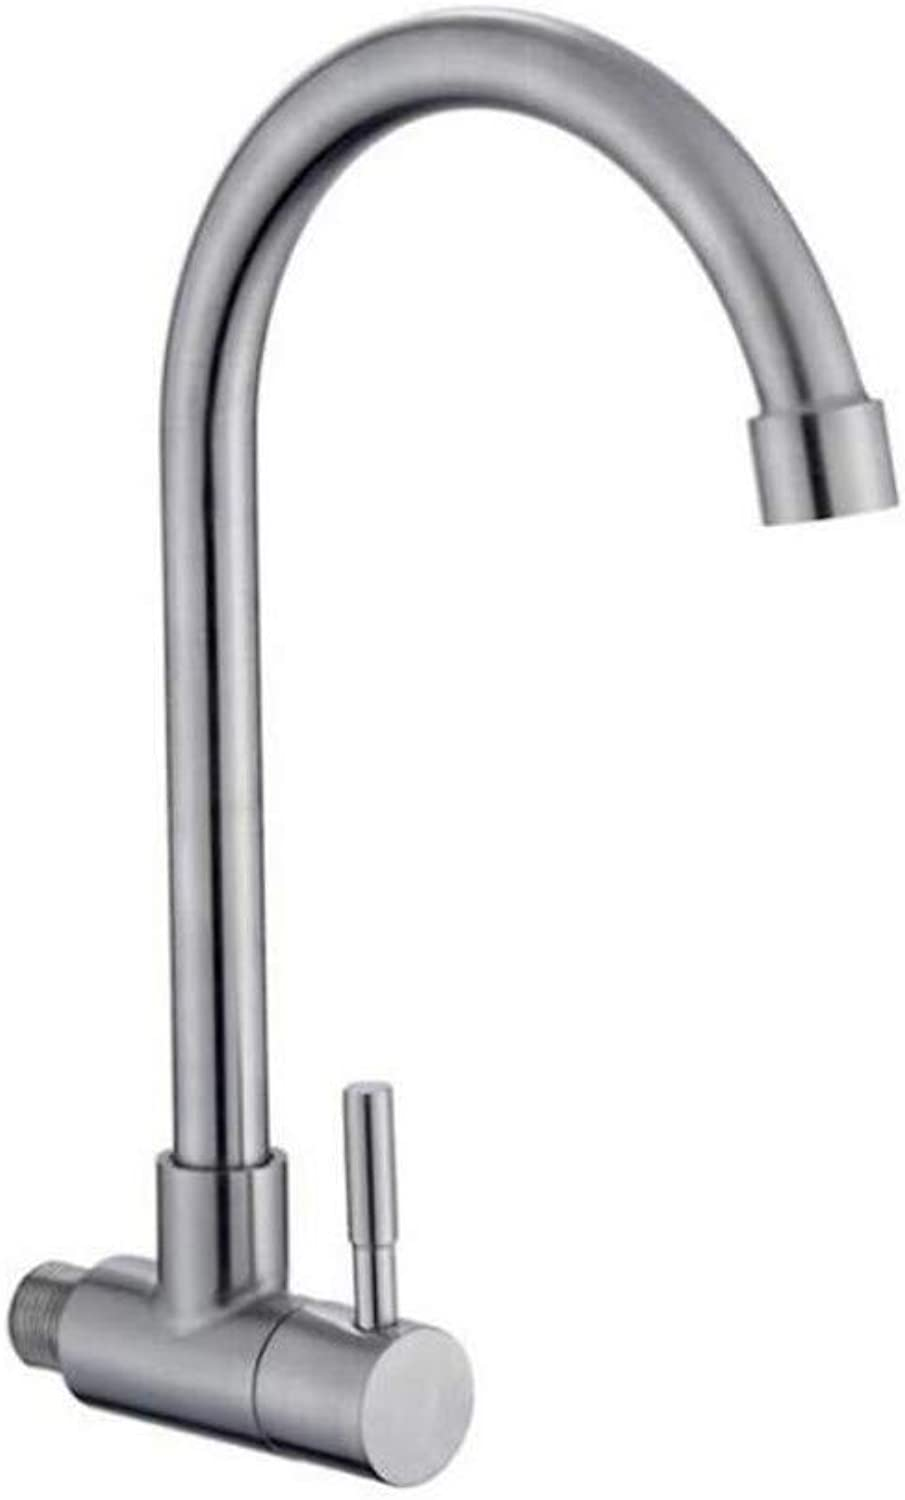 Taps Kitchen Sinktaps Mixer Swivel Faucet Sink Stainless Steel Single-Cold Transverse Universal Pipe Faucet